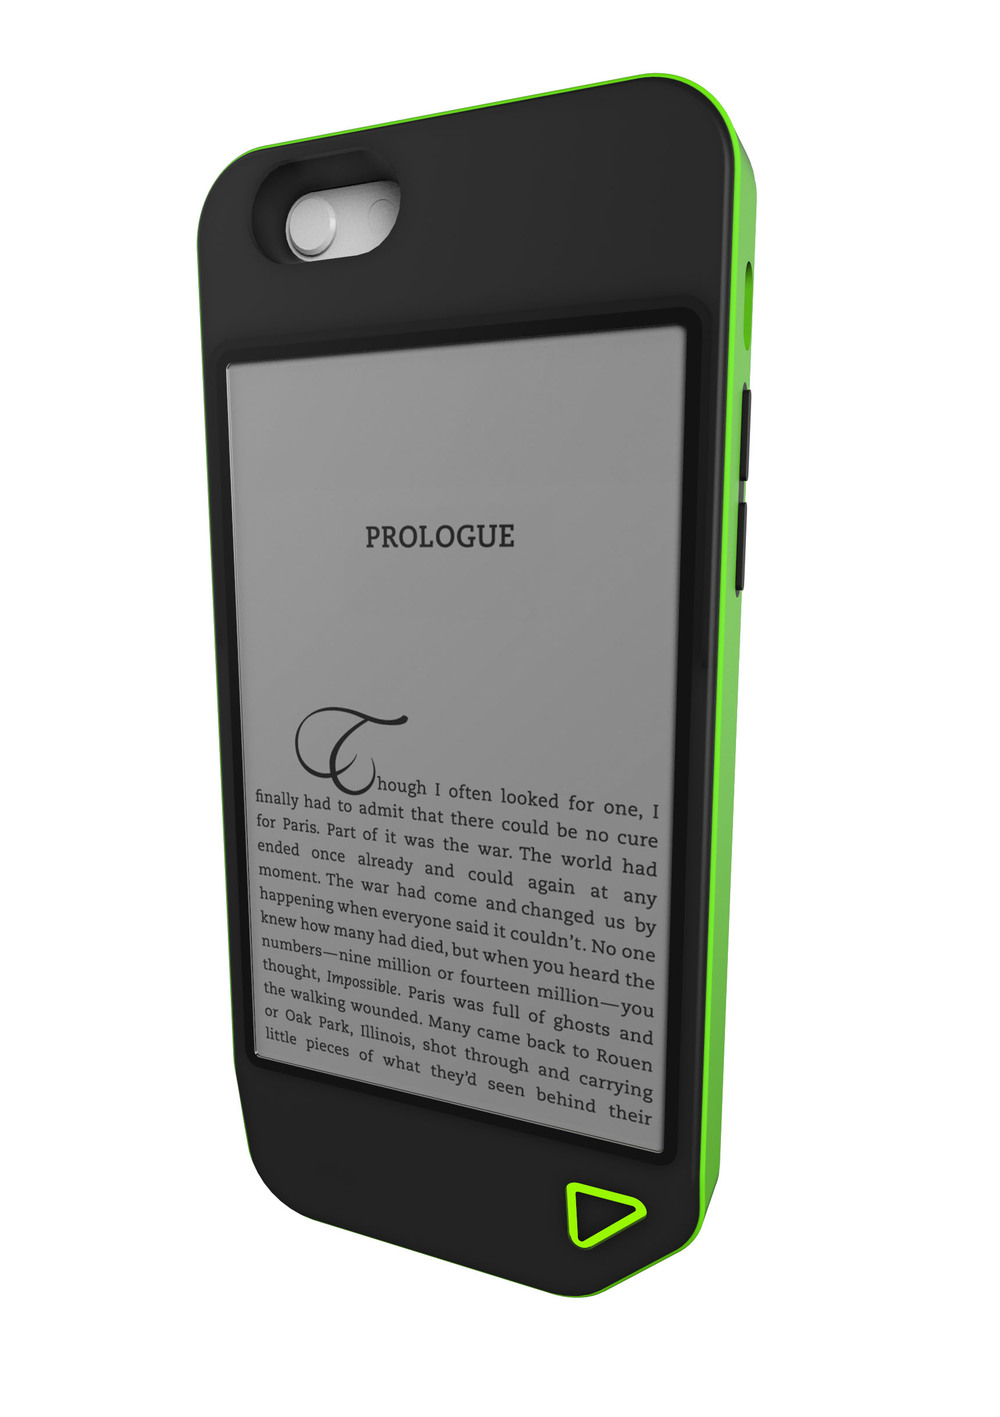 lithocase e-reader e-ink scroll read kindle case e-ink engineering  colorado boulder